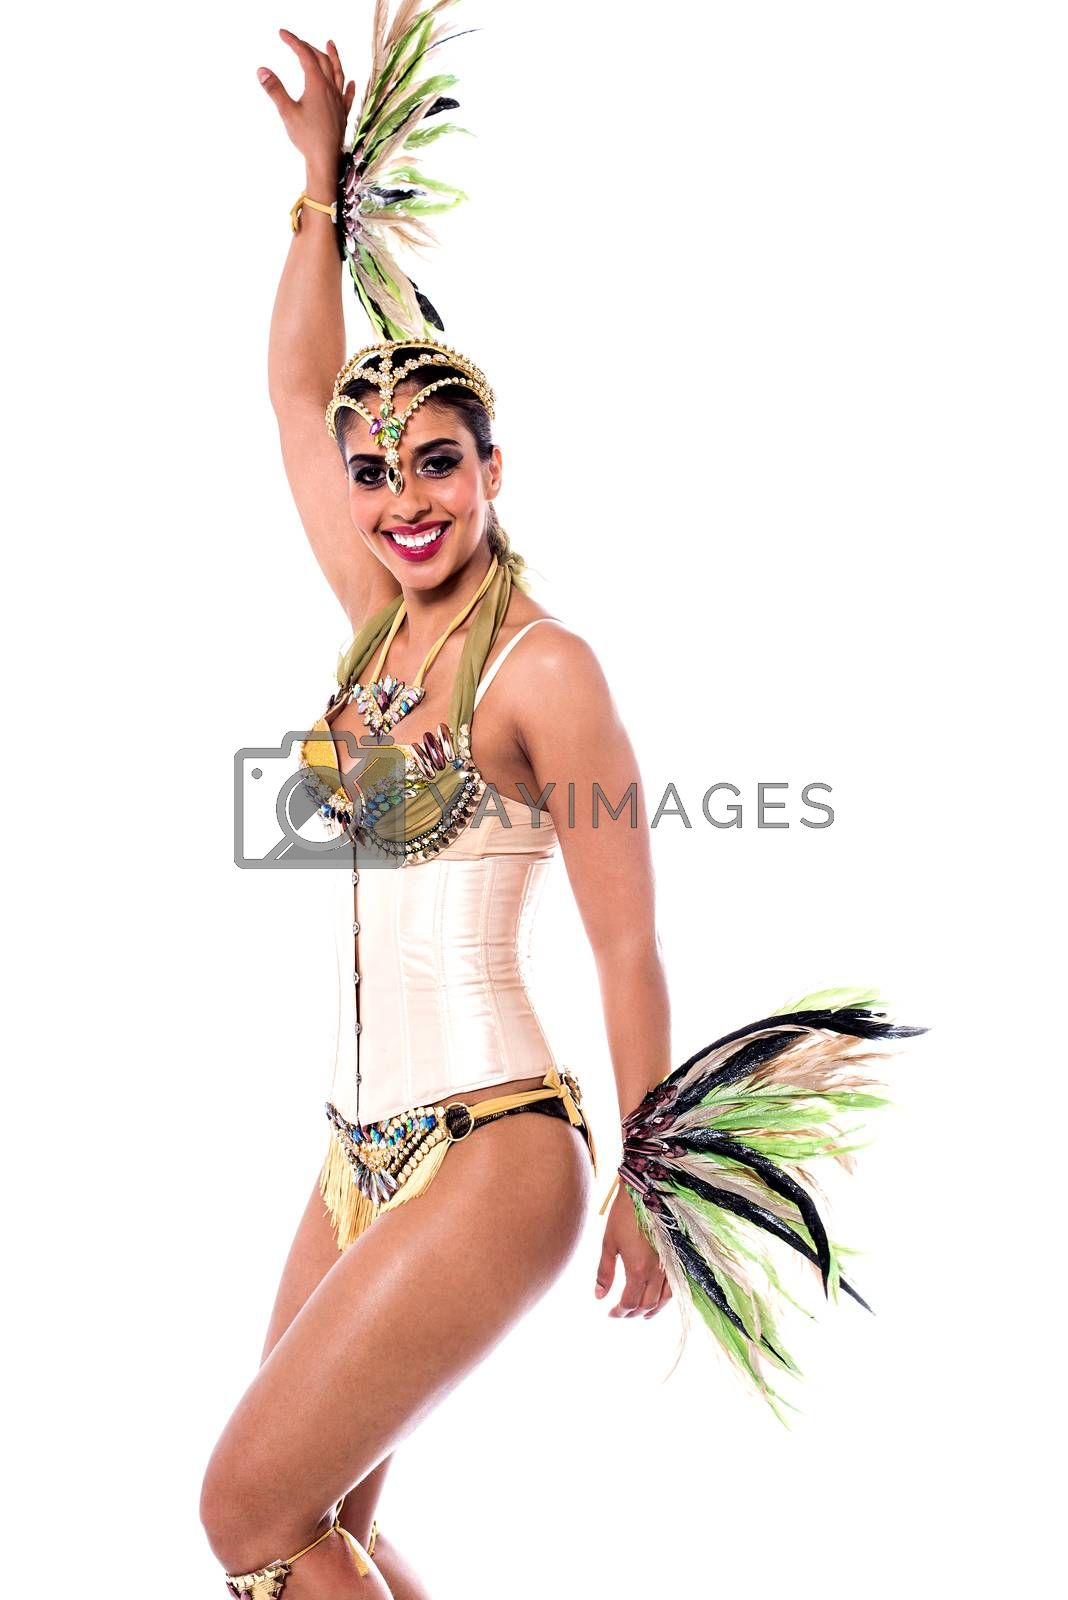 Beautiful woman posing in carnival costume over white